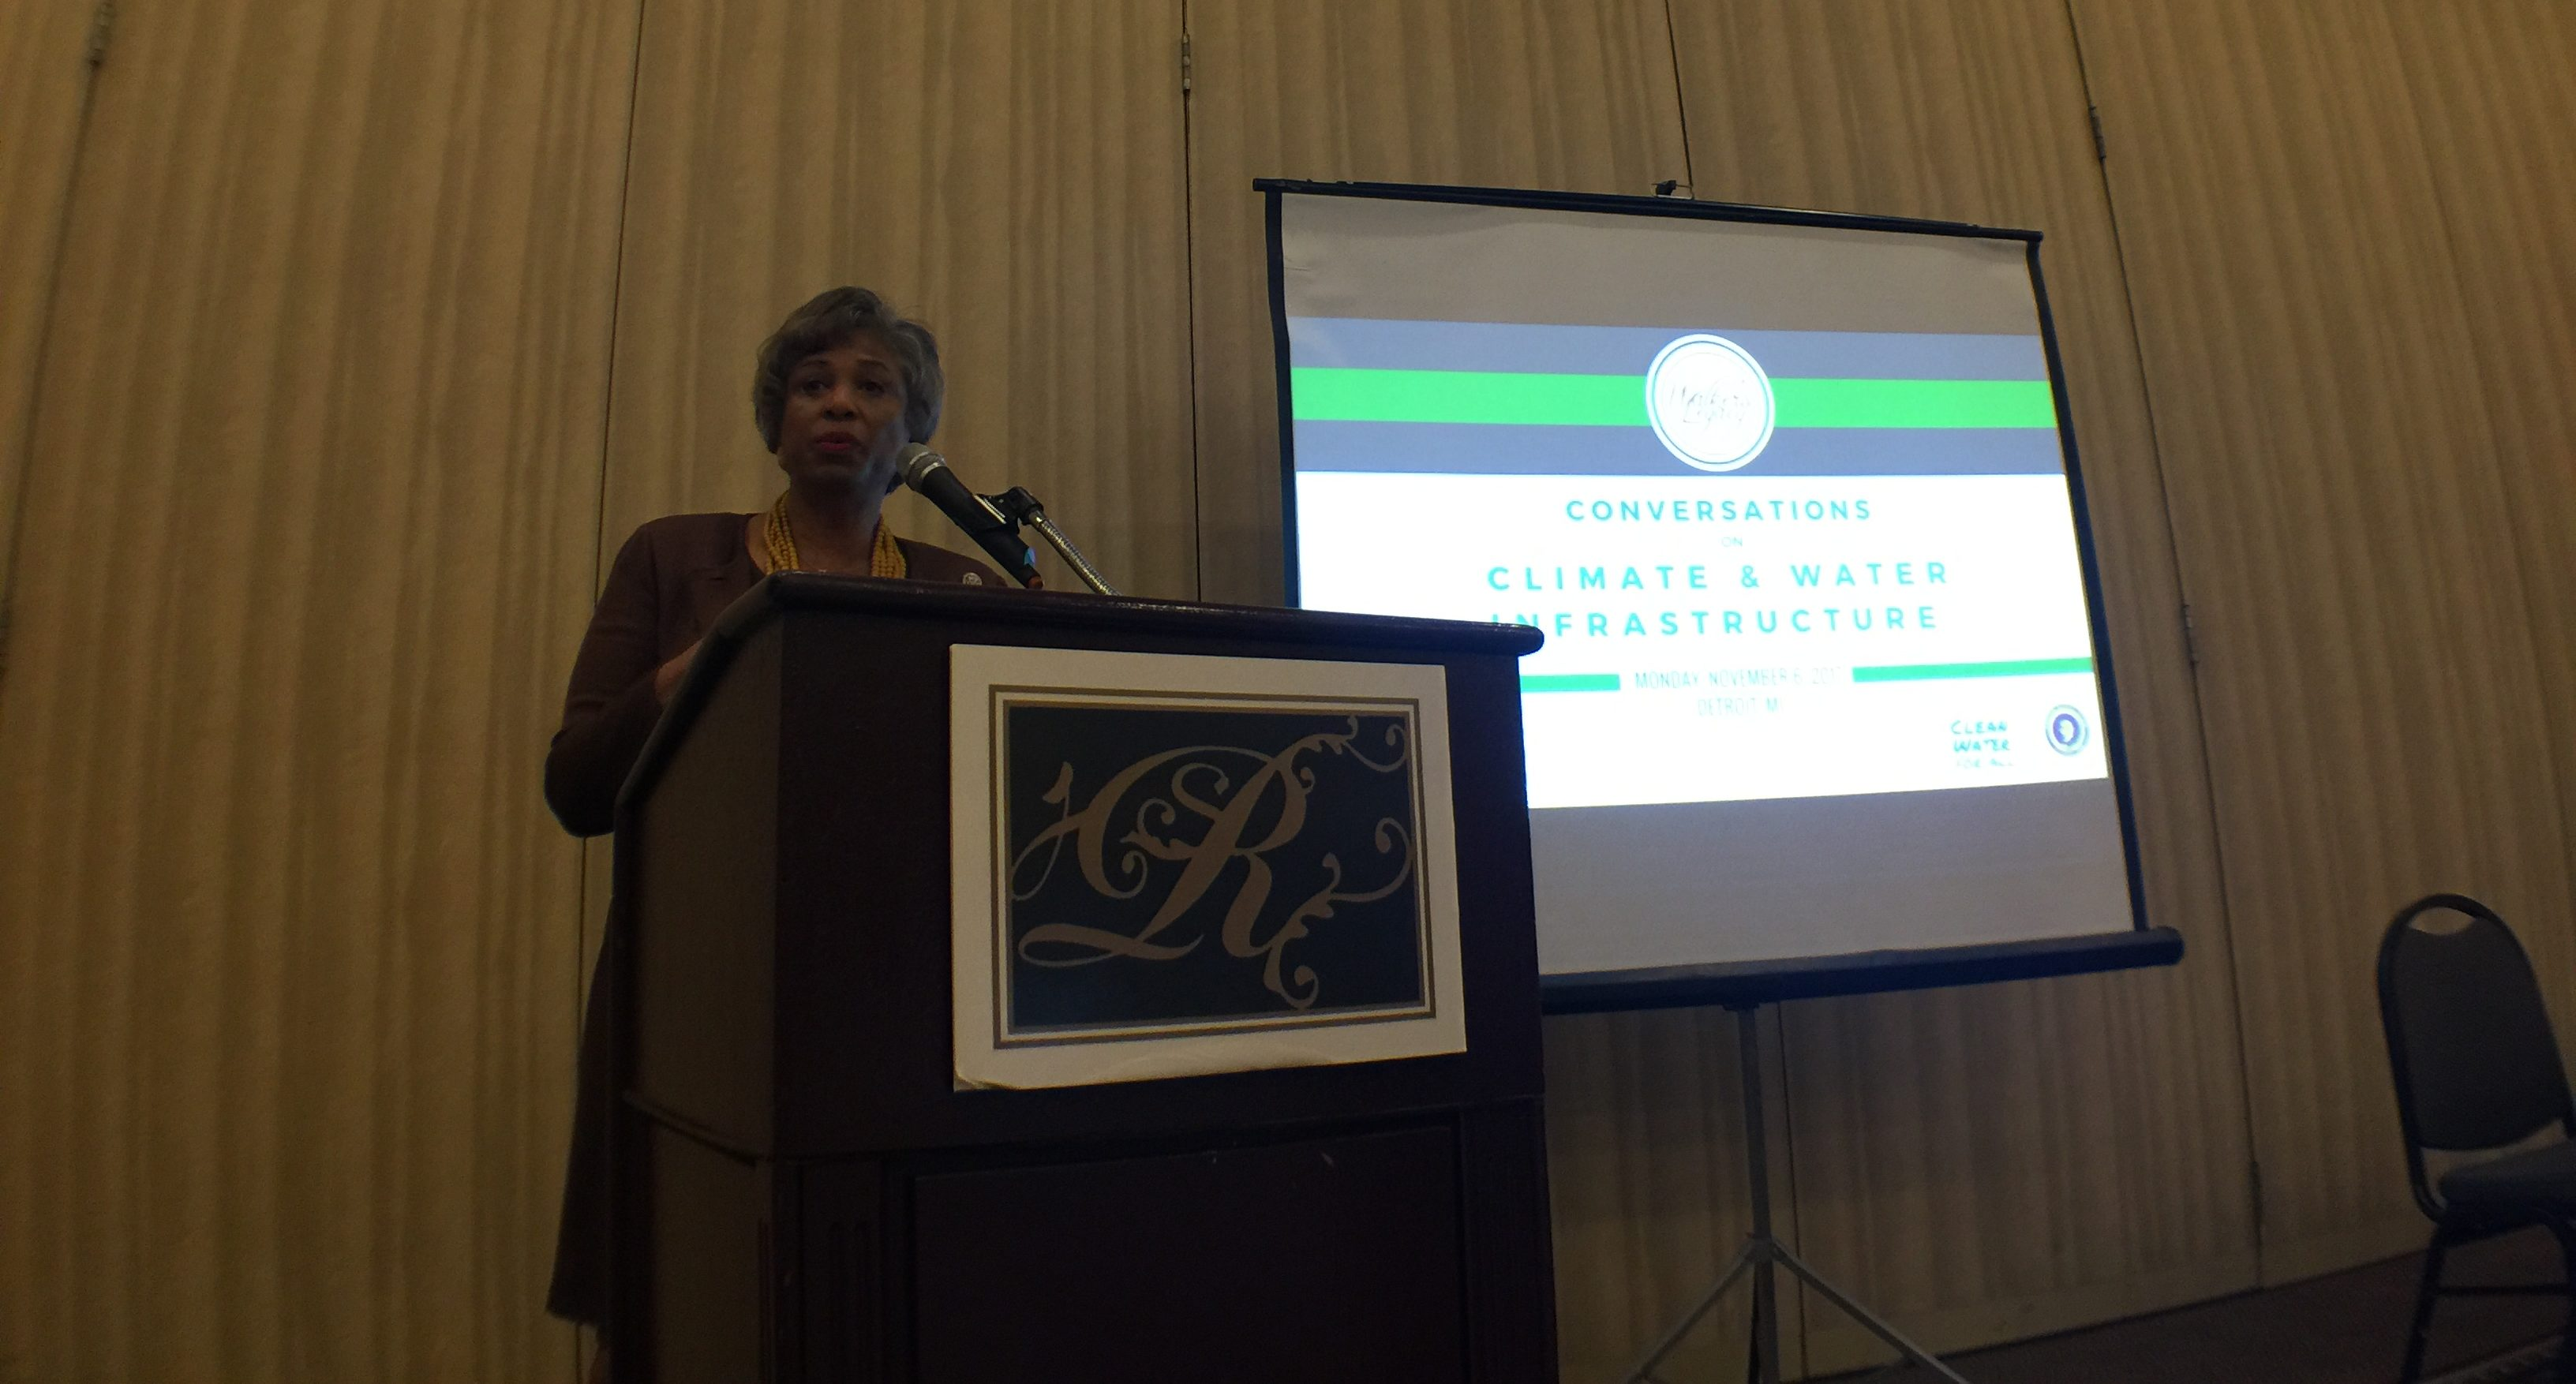 Congresswoman Brenda L. Lawrence provides featured remarks during the program